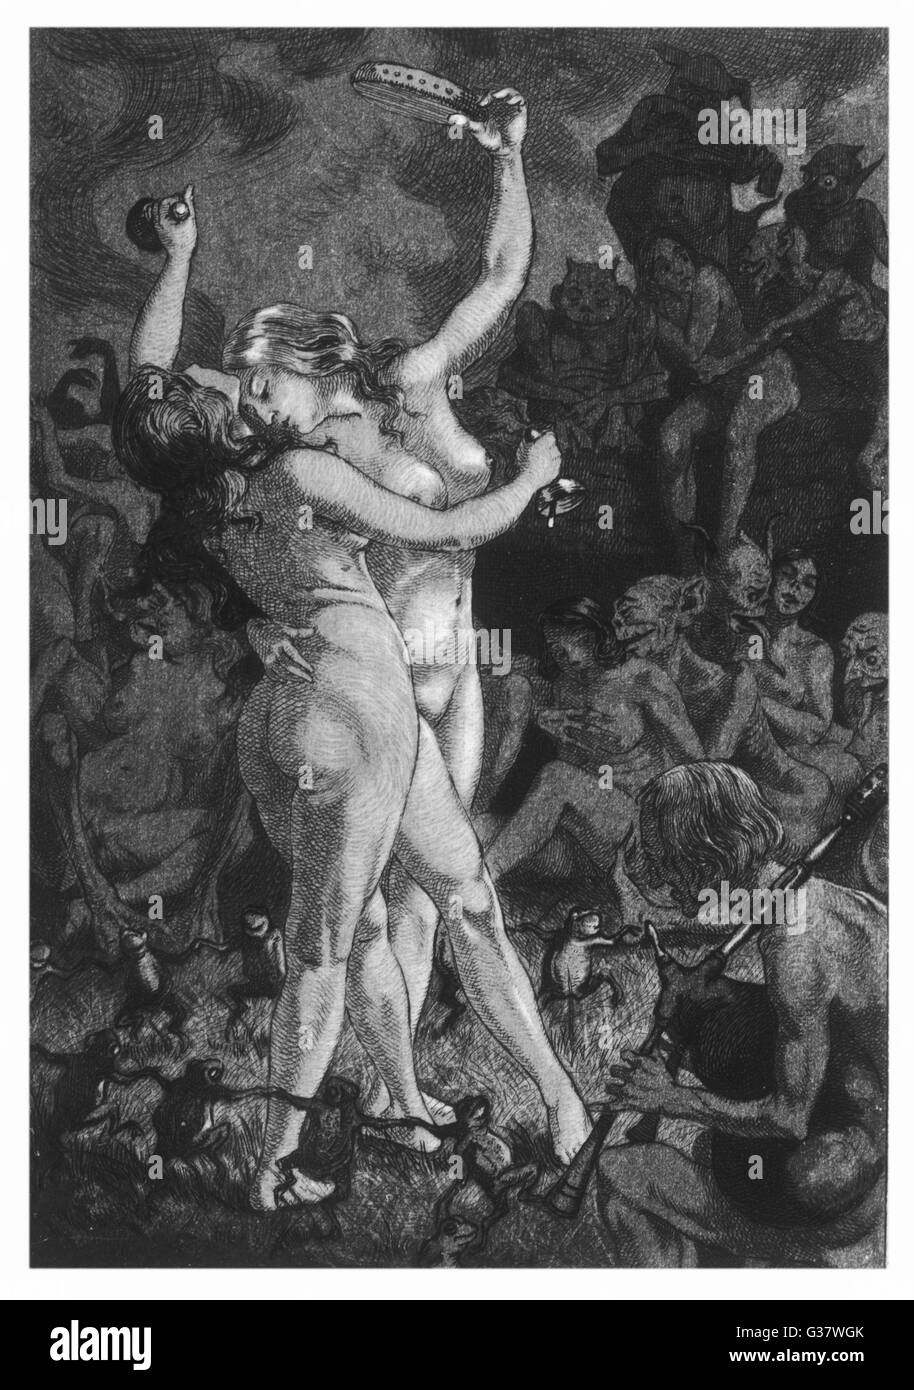 At a sabbat in the Basque  country, two witches enjoy a  lascivious dance while others  enjoy the embraces of demons - Stock Image